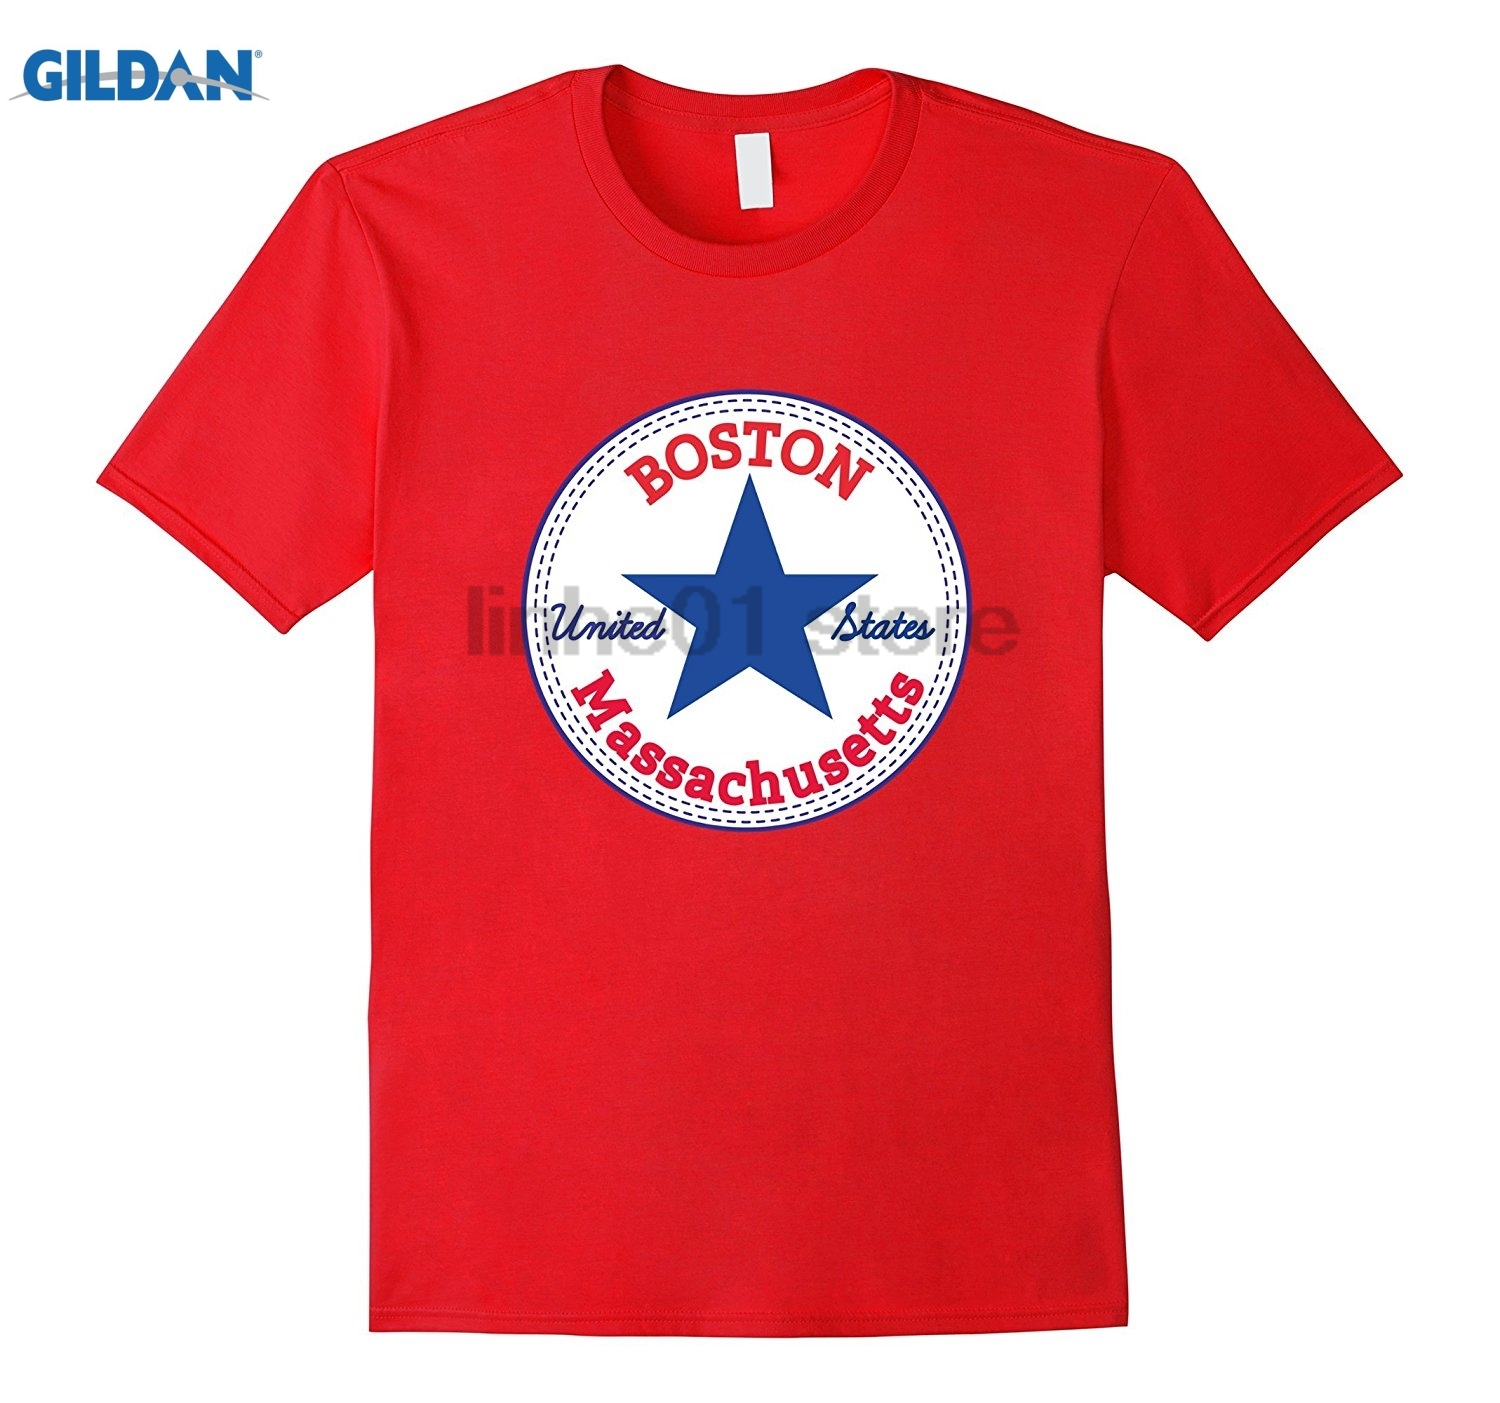 GILDAN BOSTON - MASSACHUSETTS United States USA relaxed fit T-Shirt Hot Womens T-shirt ...